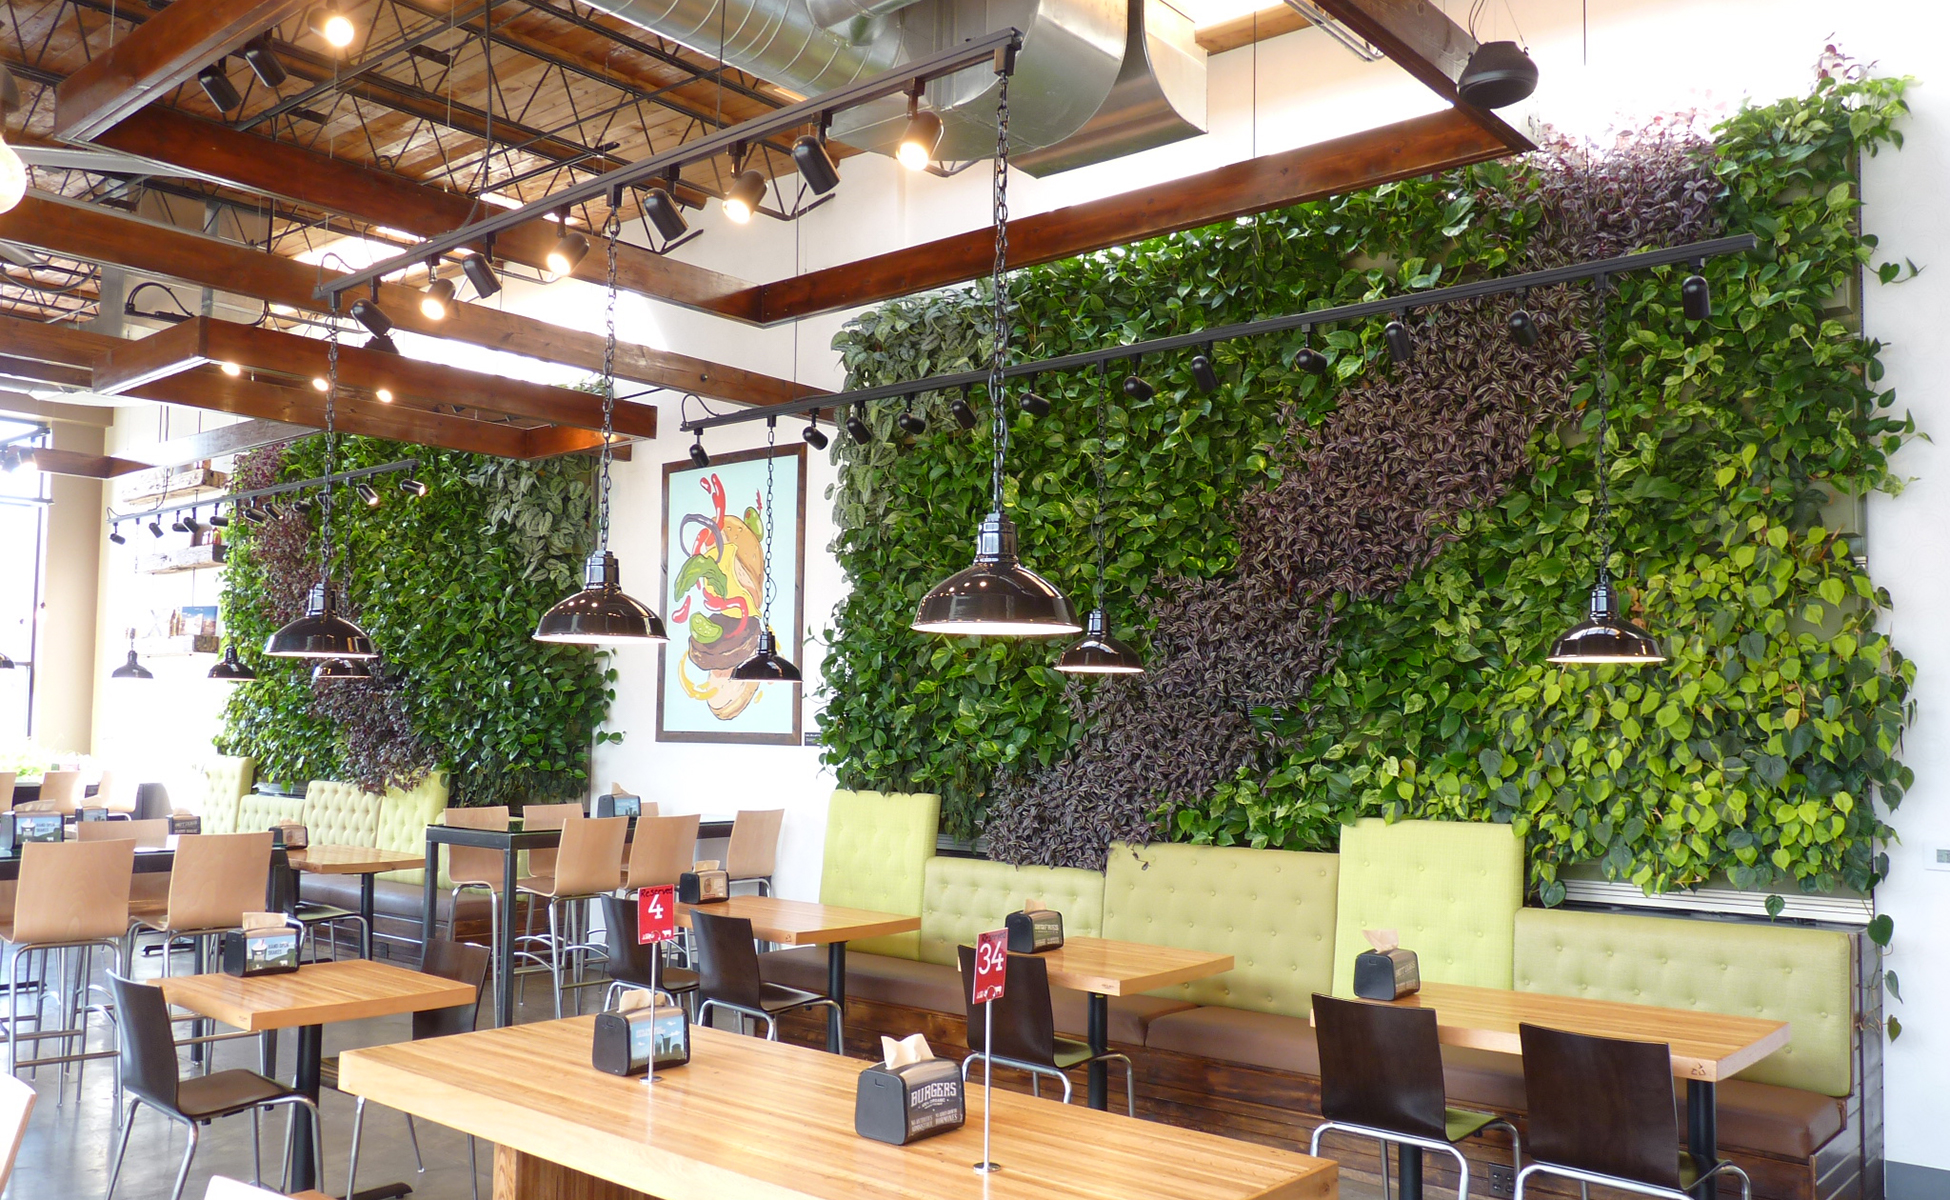 Indoor living wall inside a restaurant.